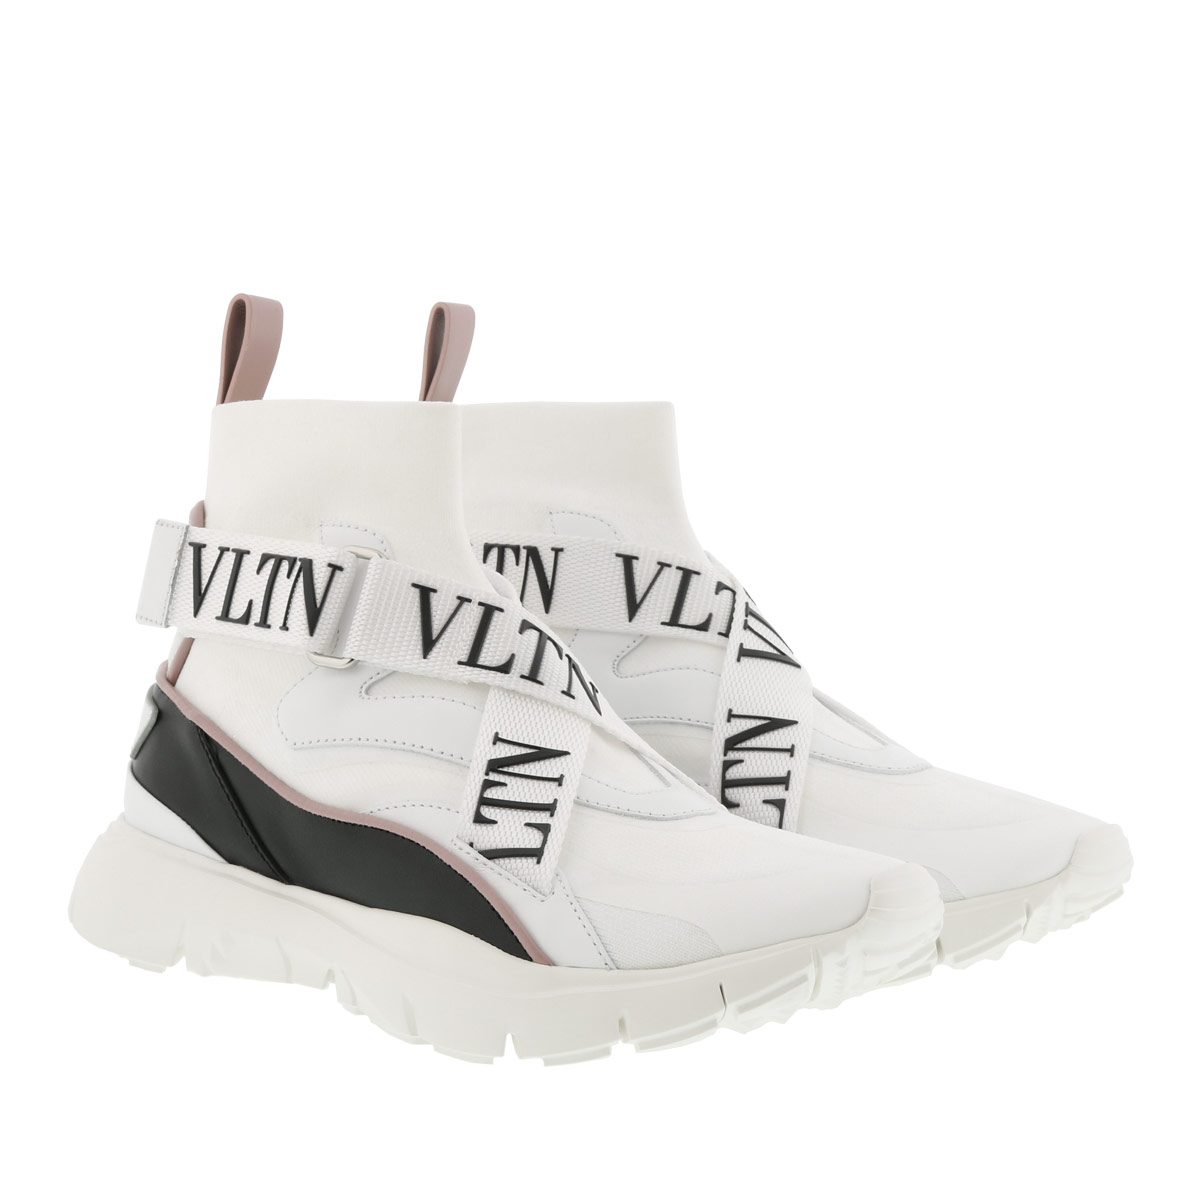 Valentino Sneakers - Heroes Her Knit Sneakers White/Multi - in weiß - für Damen